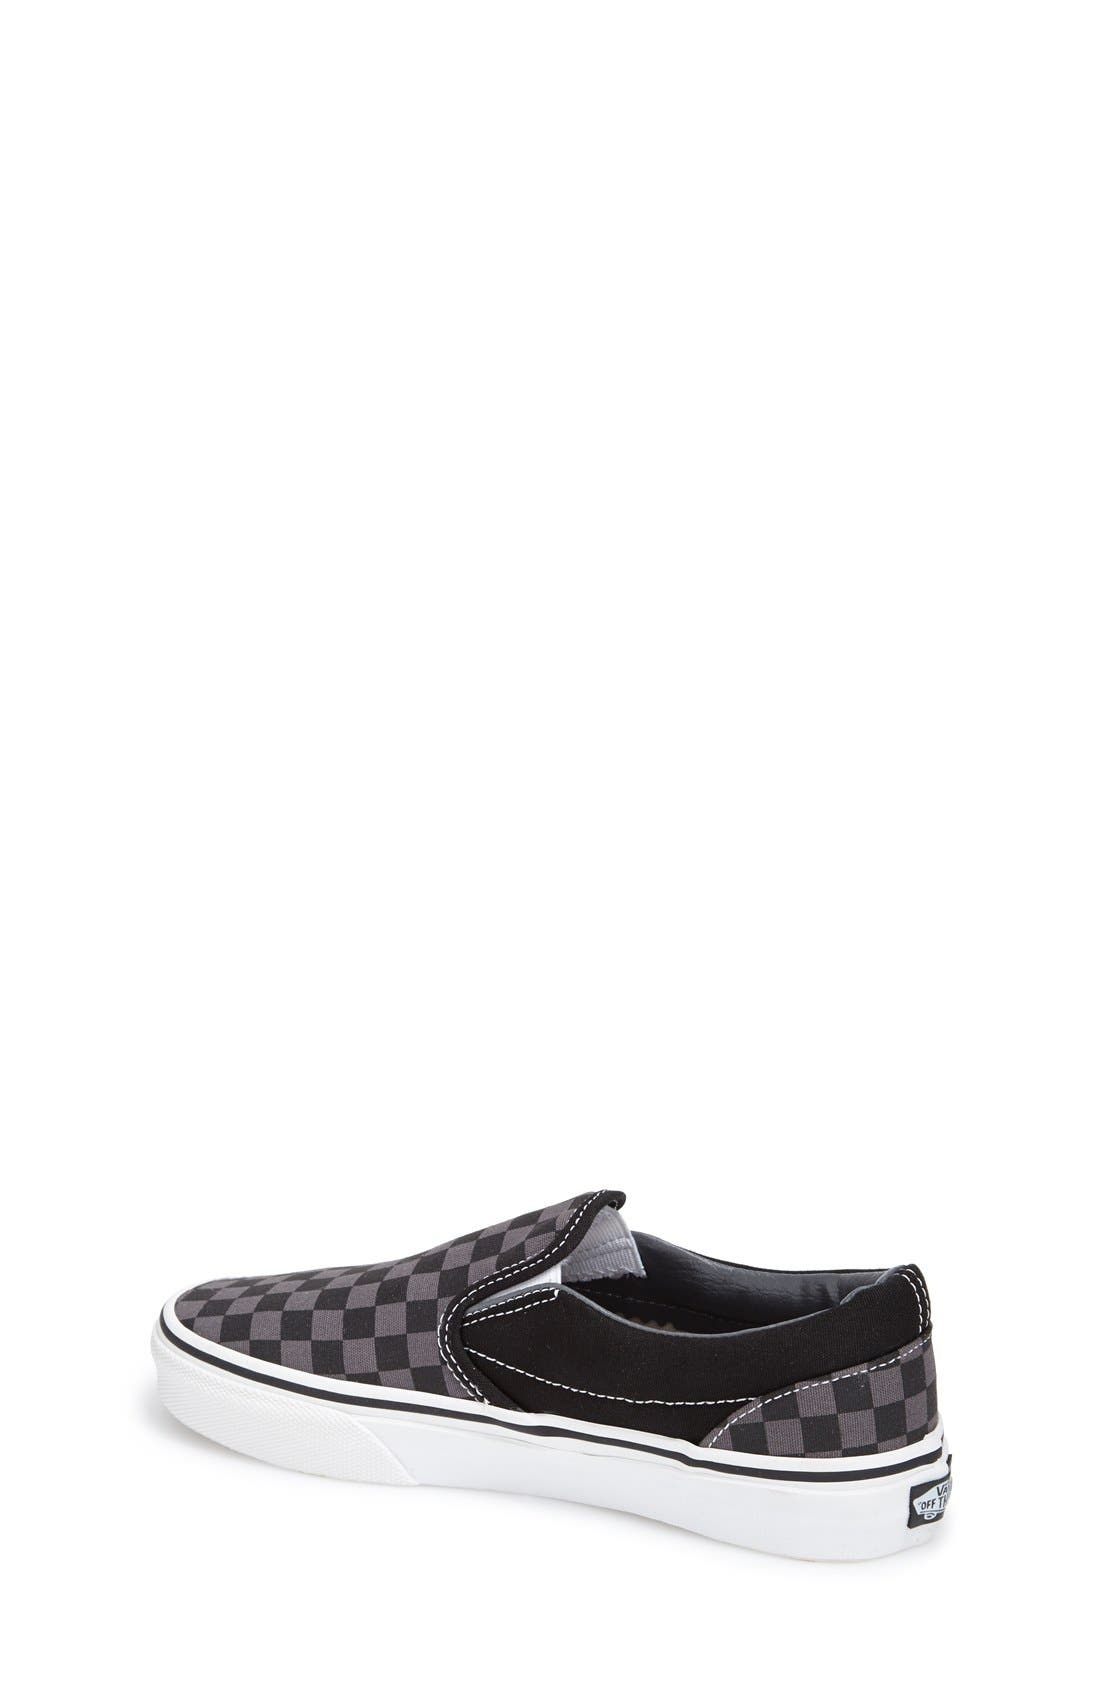 'Classic - Checker' Slip-On,                             Alternate thumbnail 2, color,                             CHECKERBOARD/ BLACK/ PEWTER